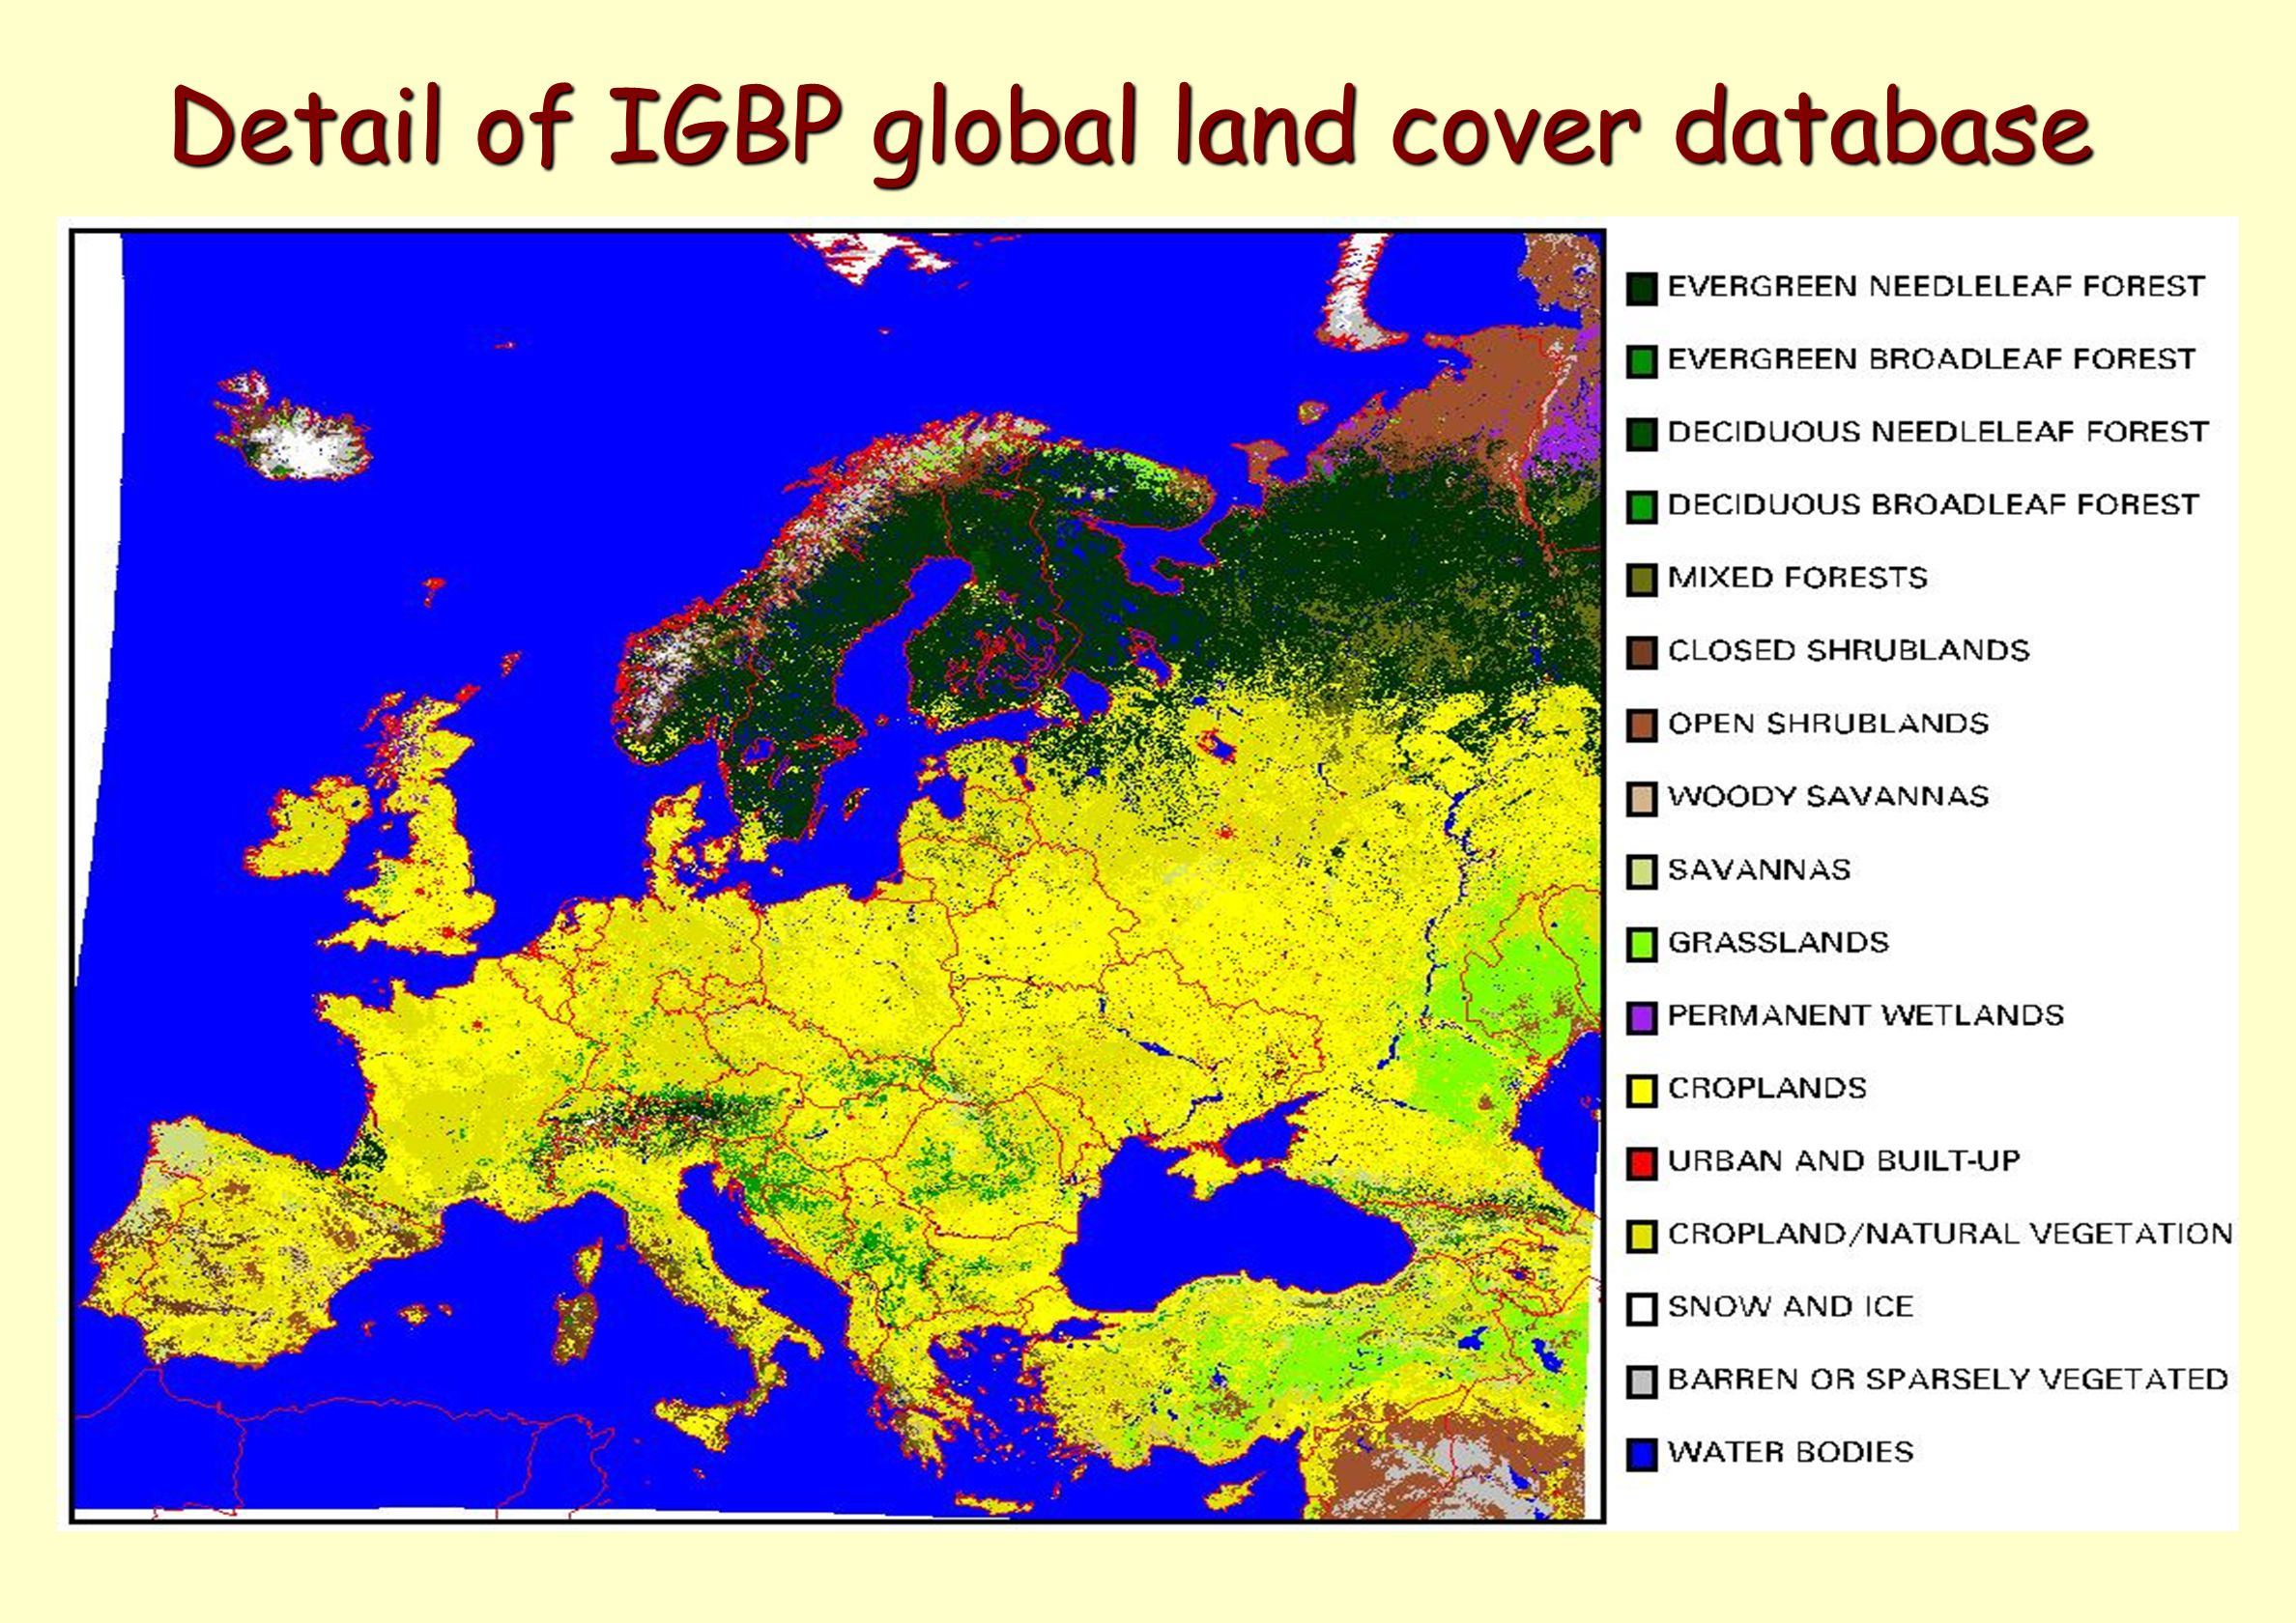 Detail of IGBP global land cover database